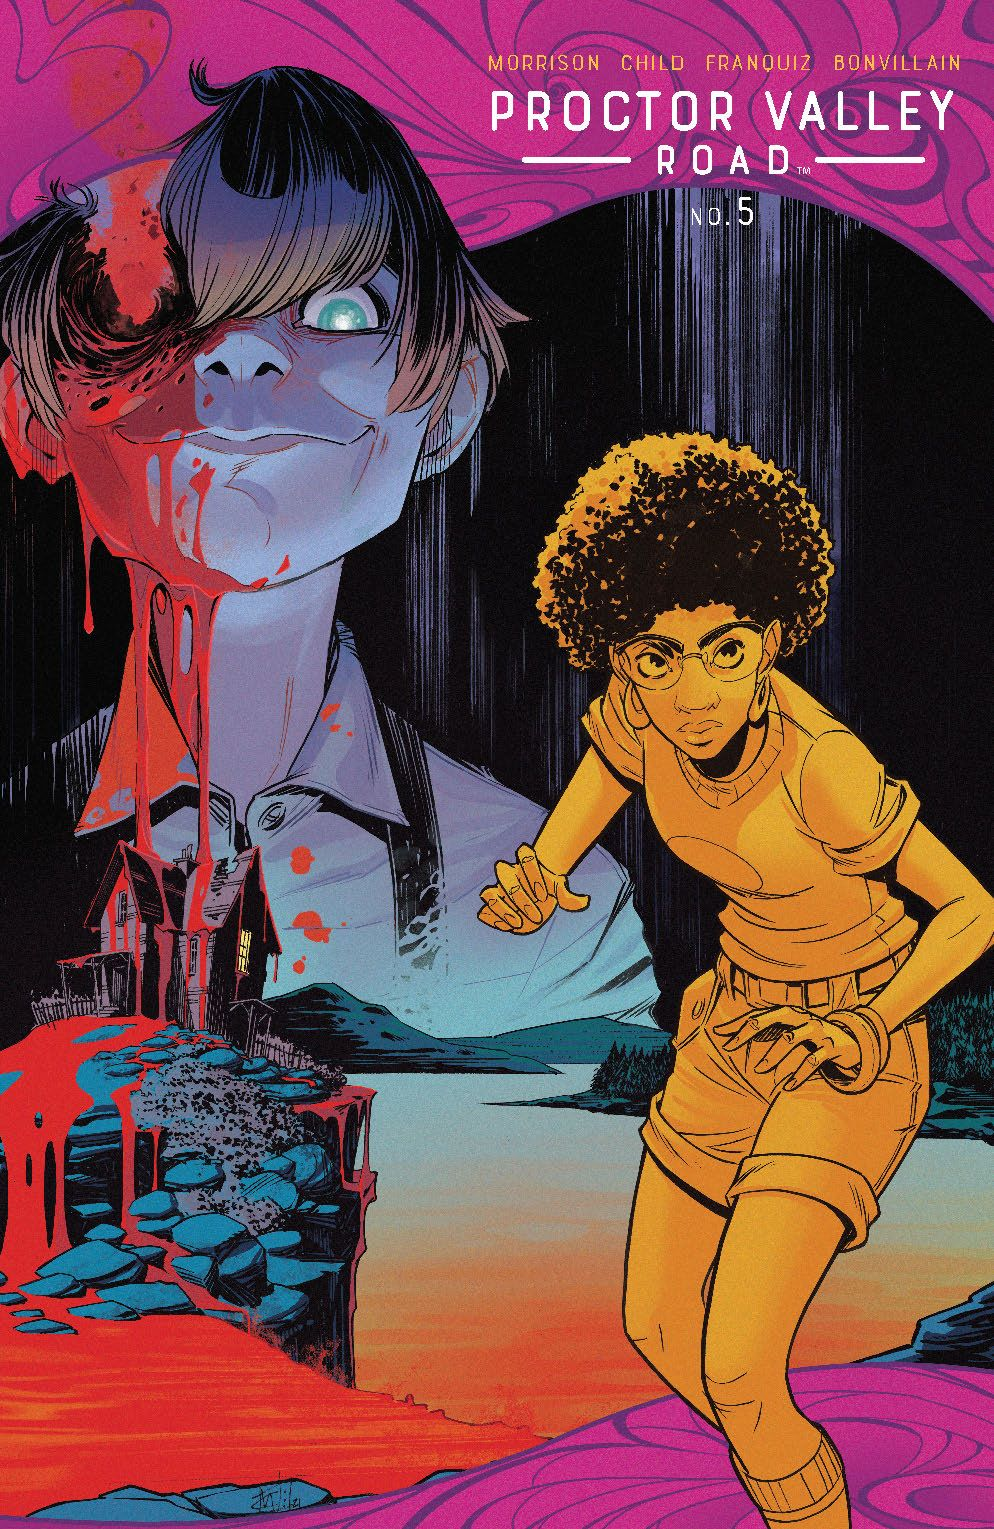 ProctorValleyRoad_005_Cover_B_Variant ComicList Previews: PROCTOR VALLEY ROAD #5 (OF 5)